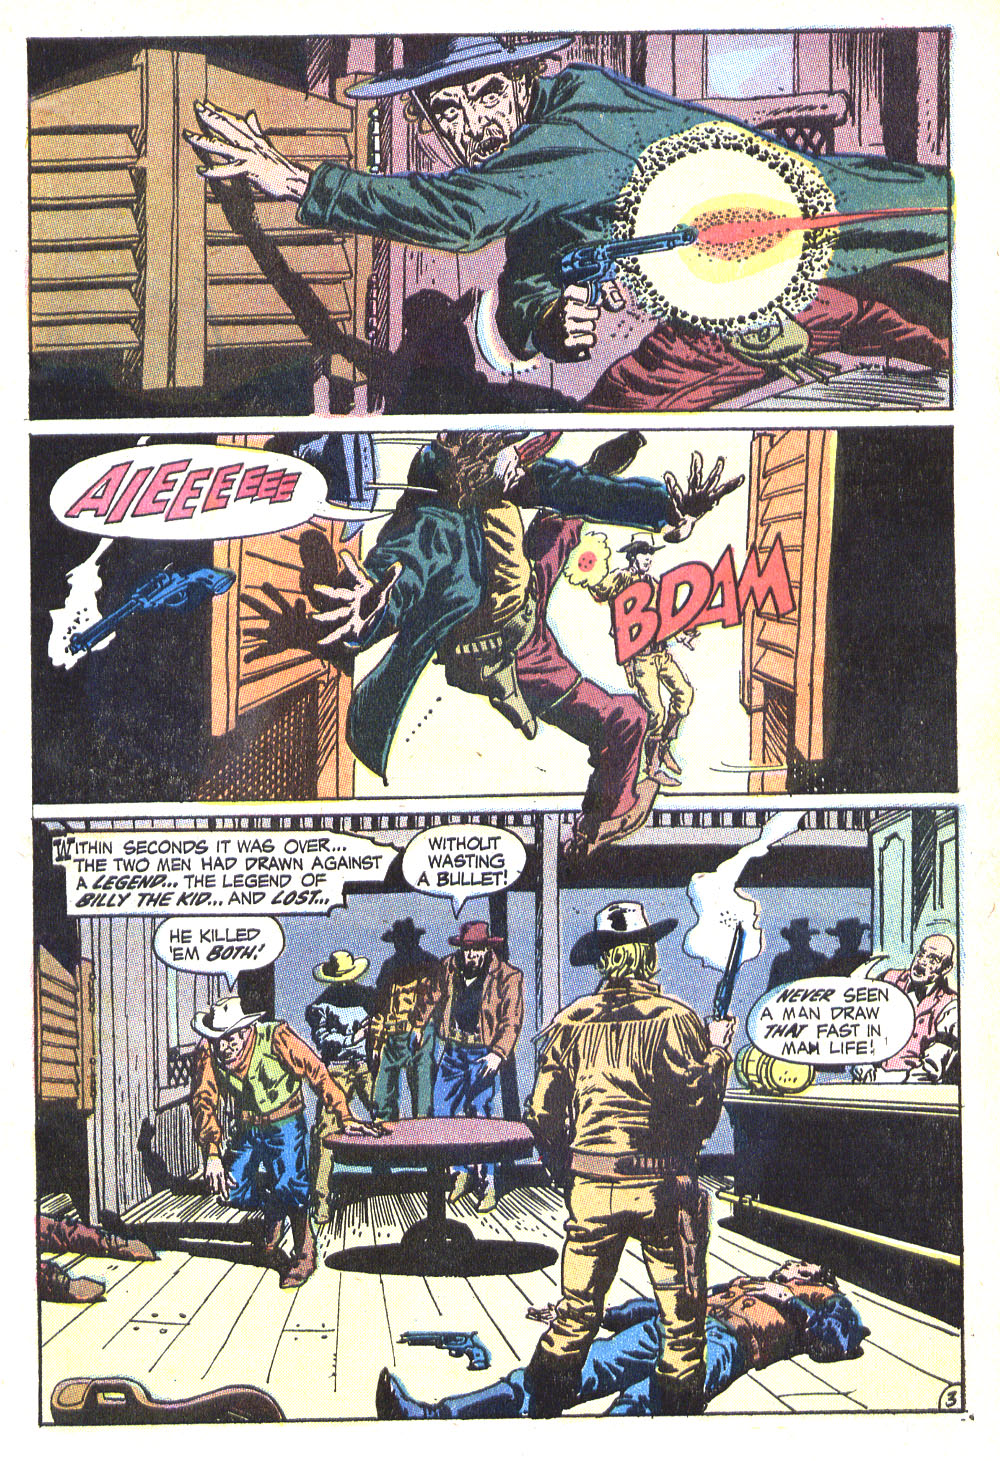 Read online All-Star Western (1970) comic -  Issue #8 - 5